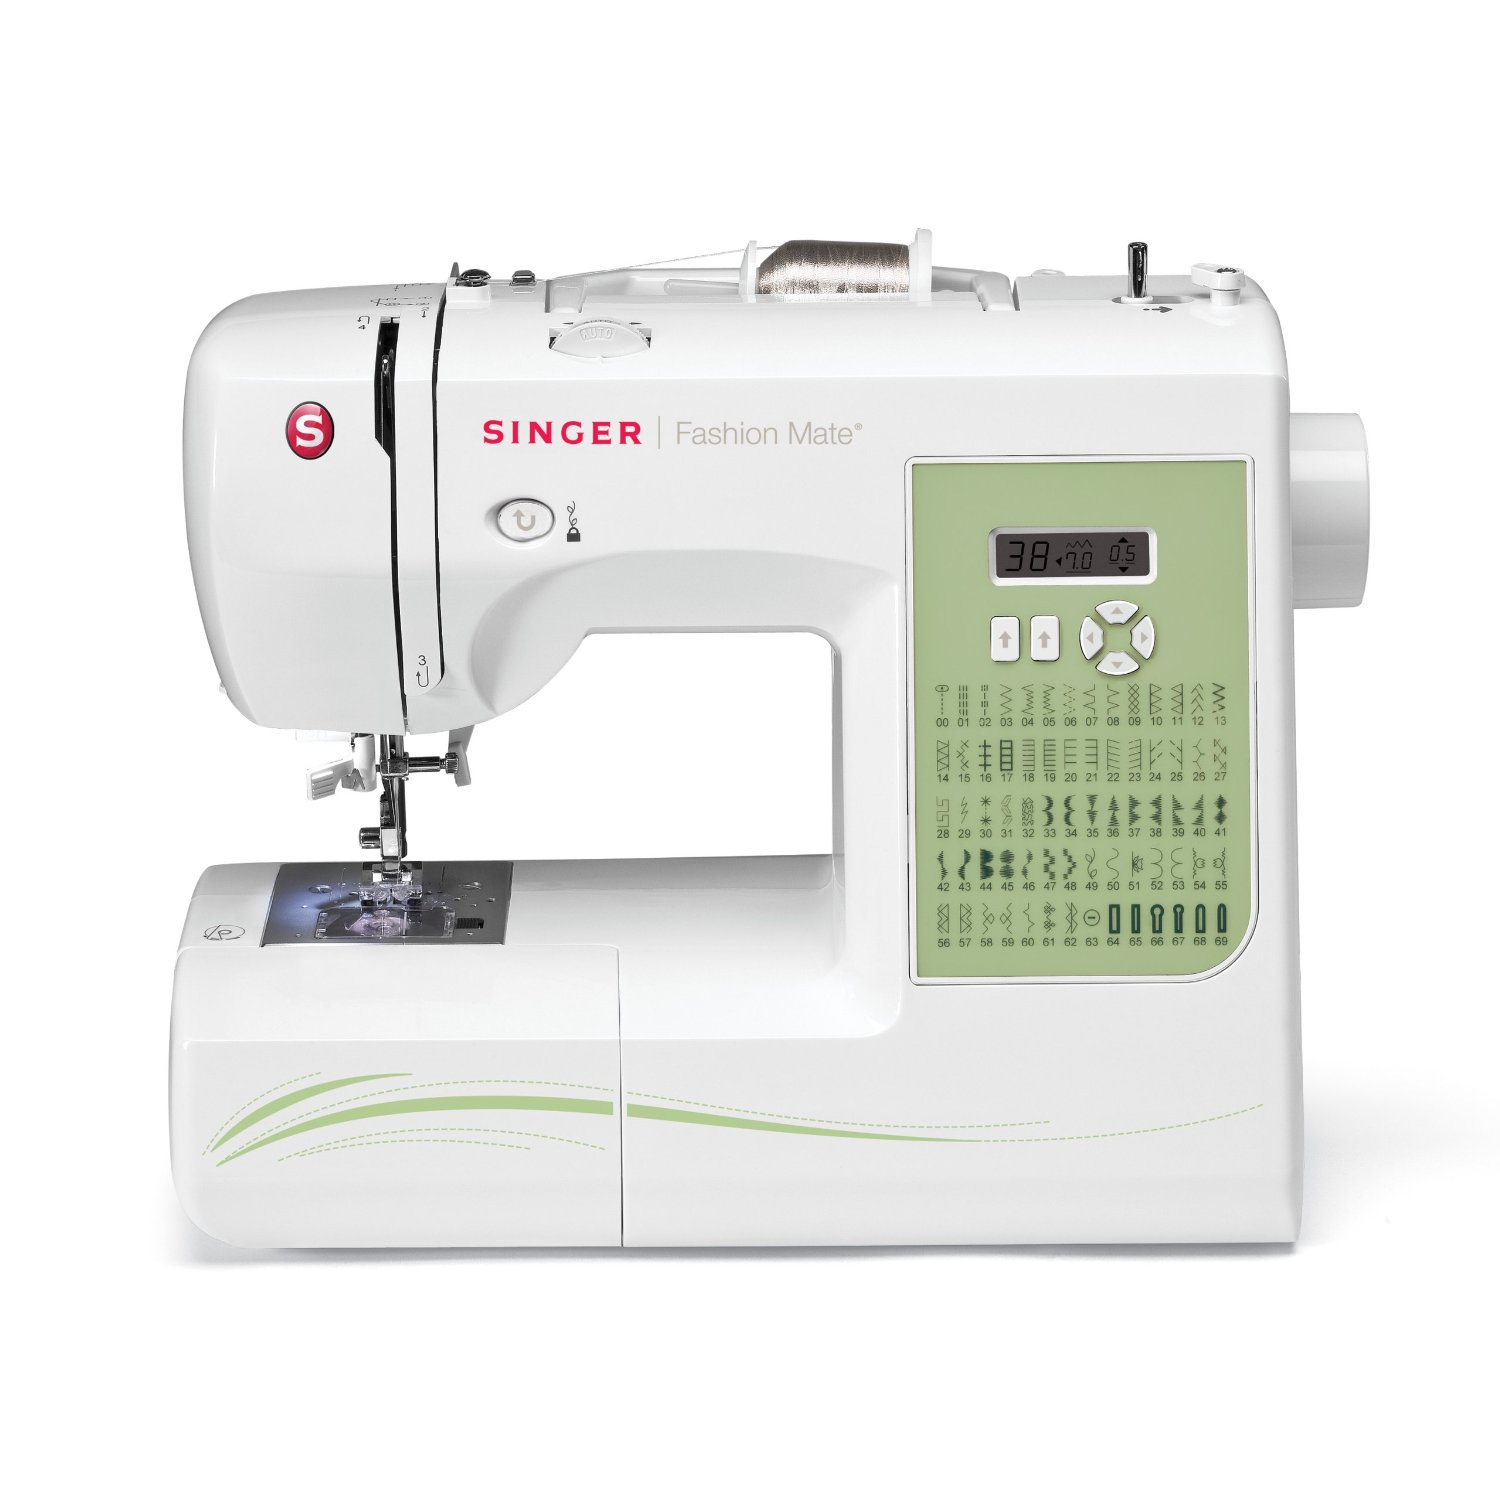 Singer 7256 Fashion Mate Sewing Machine